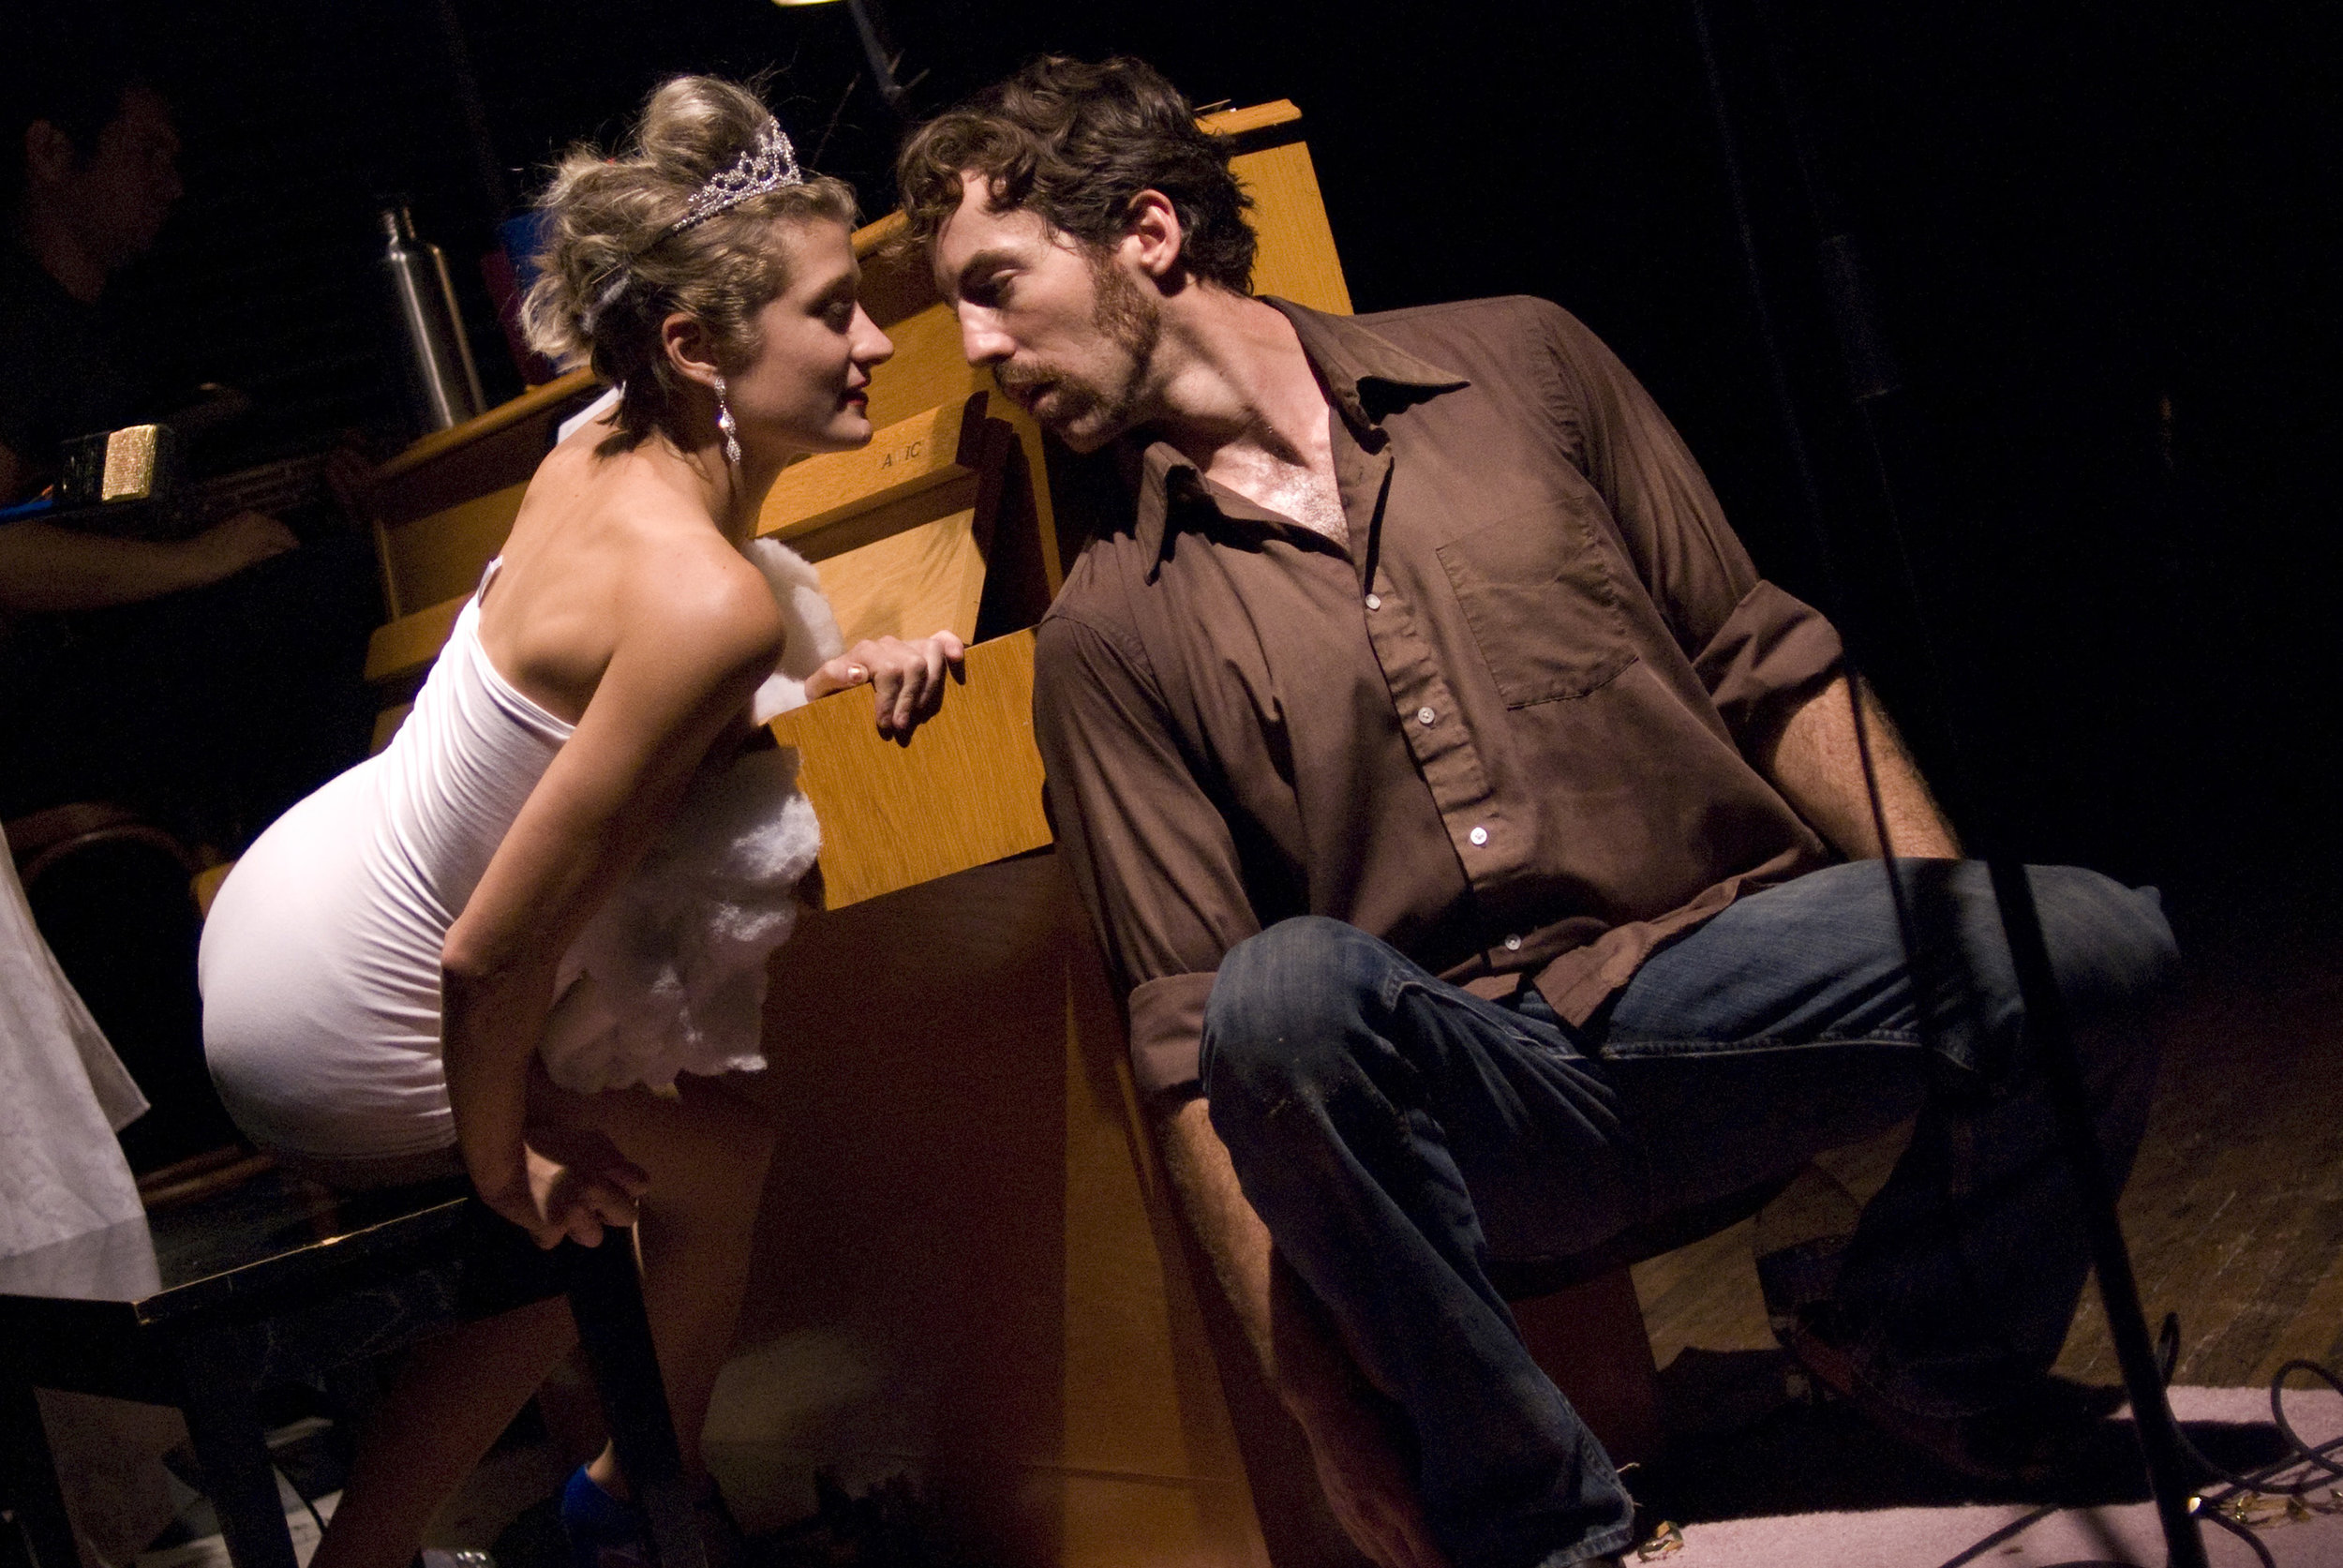 HEATHER_CHRISTIAN_and_BC_HASTERT_as Miss Atomic and Joris.jpg